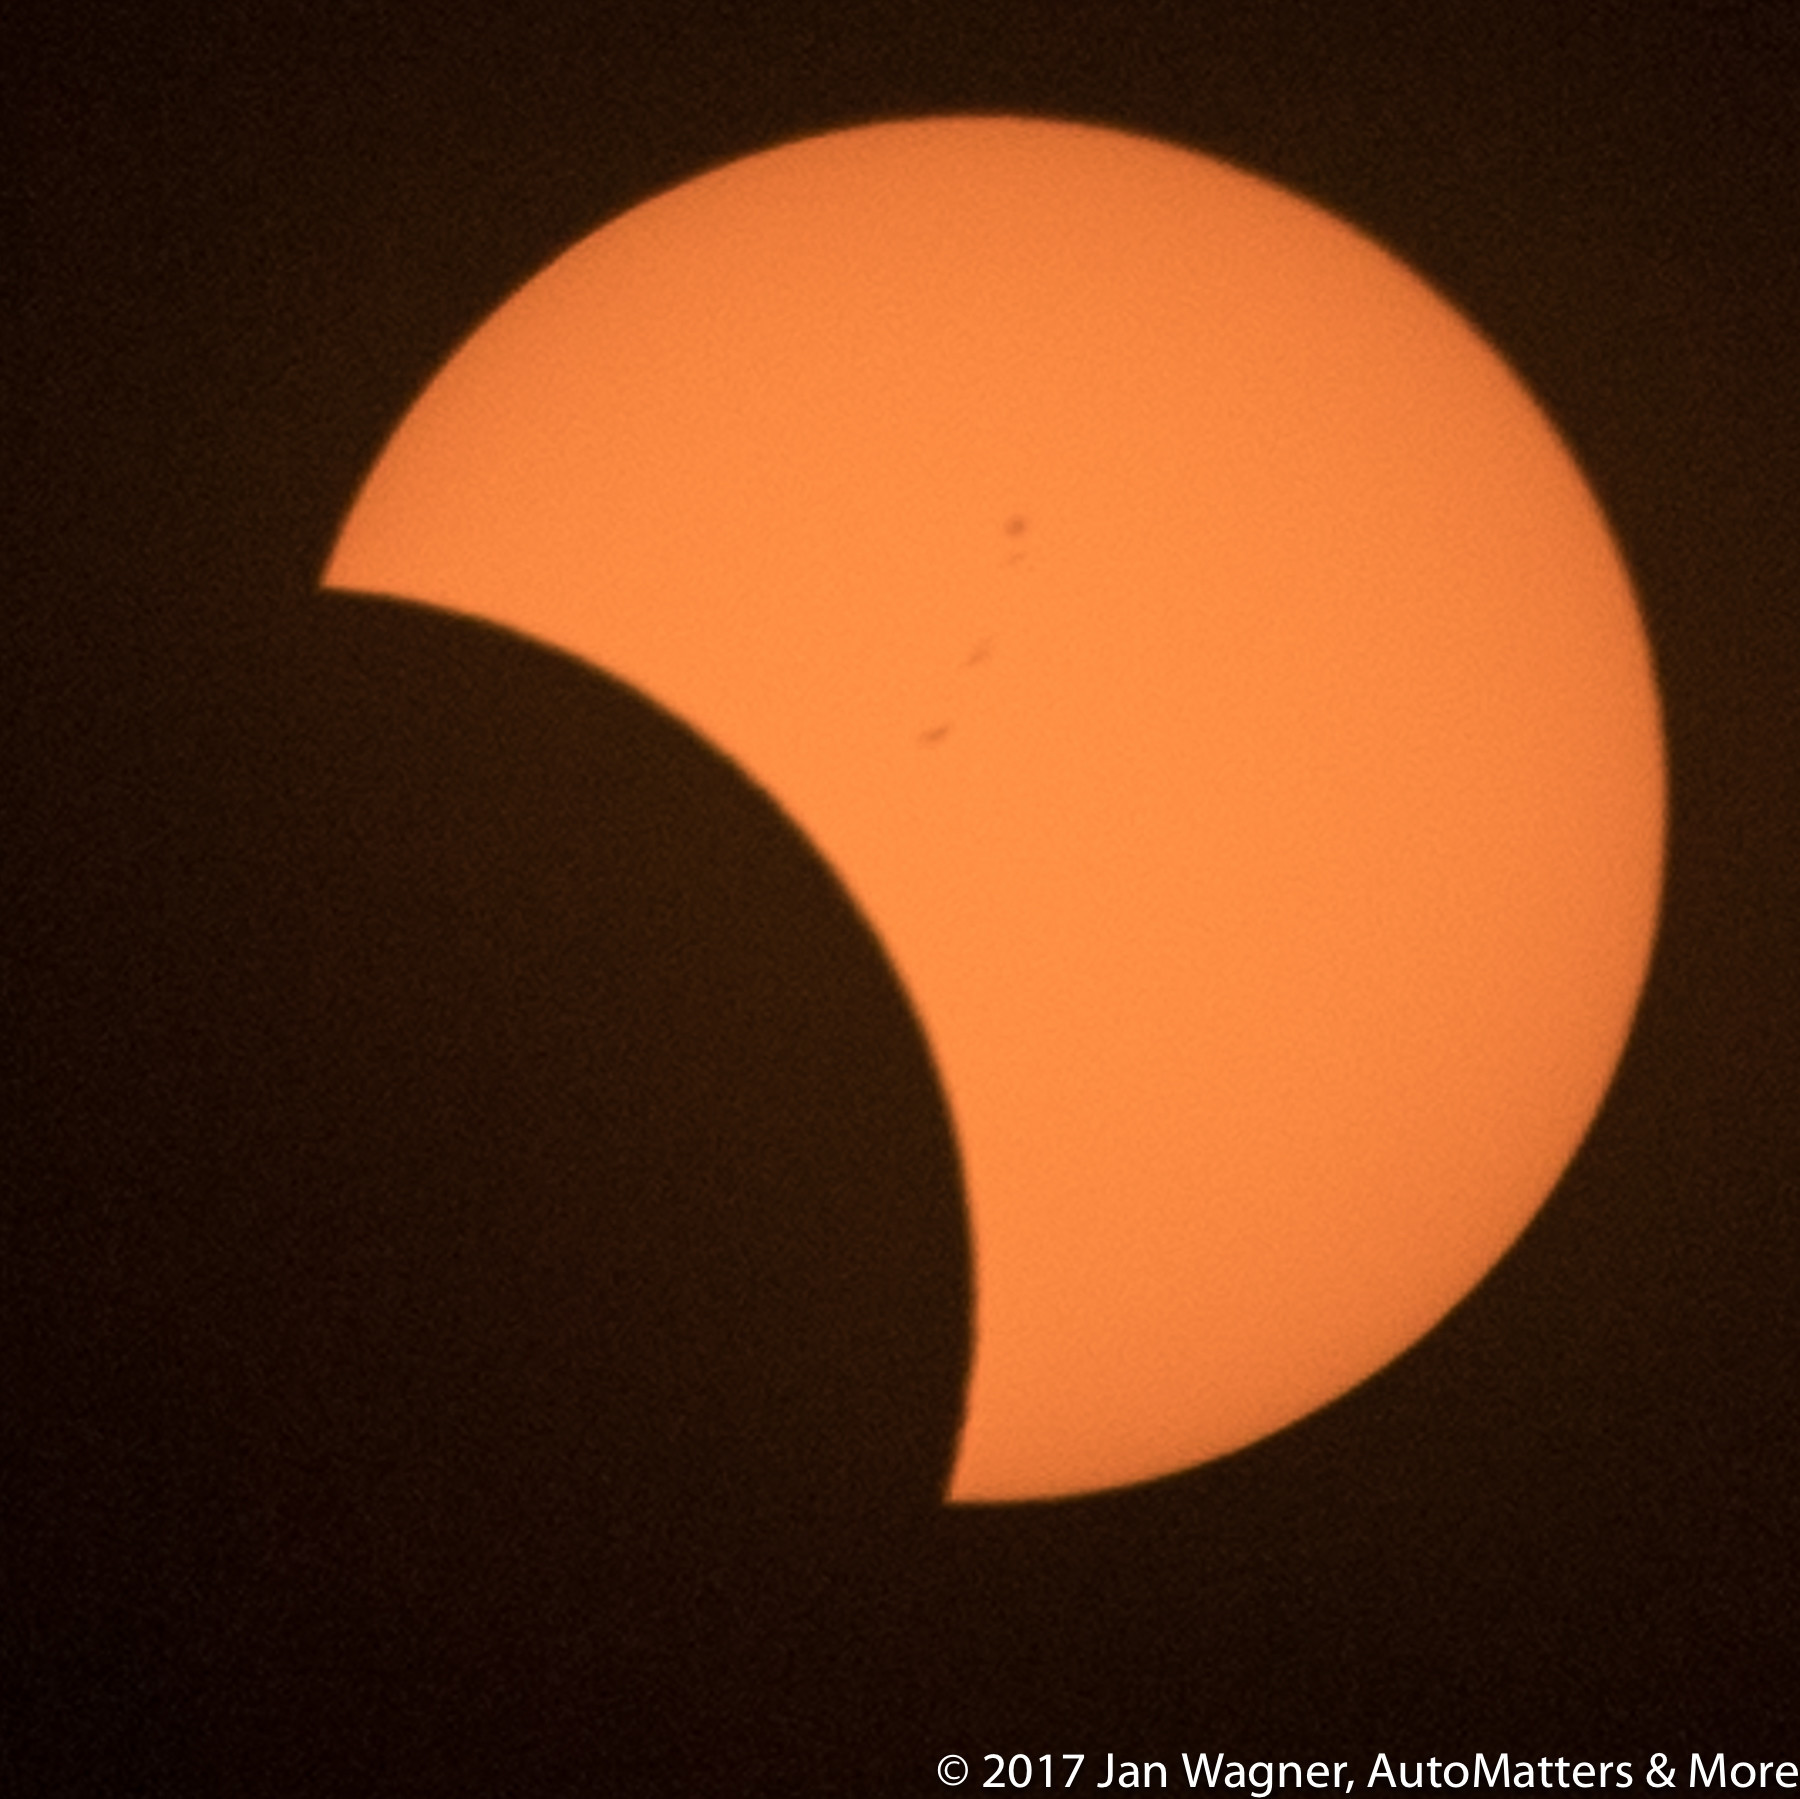 Partial solar eclipse with sunspots